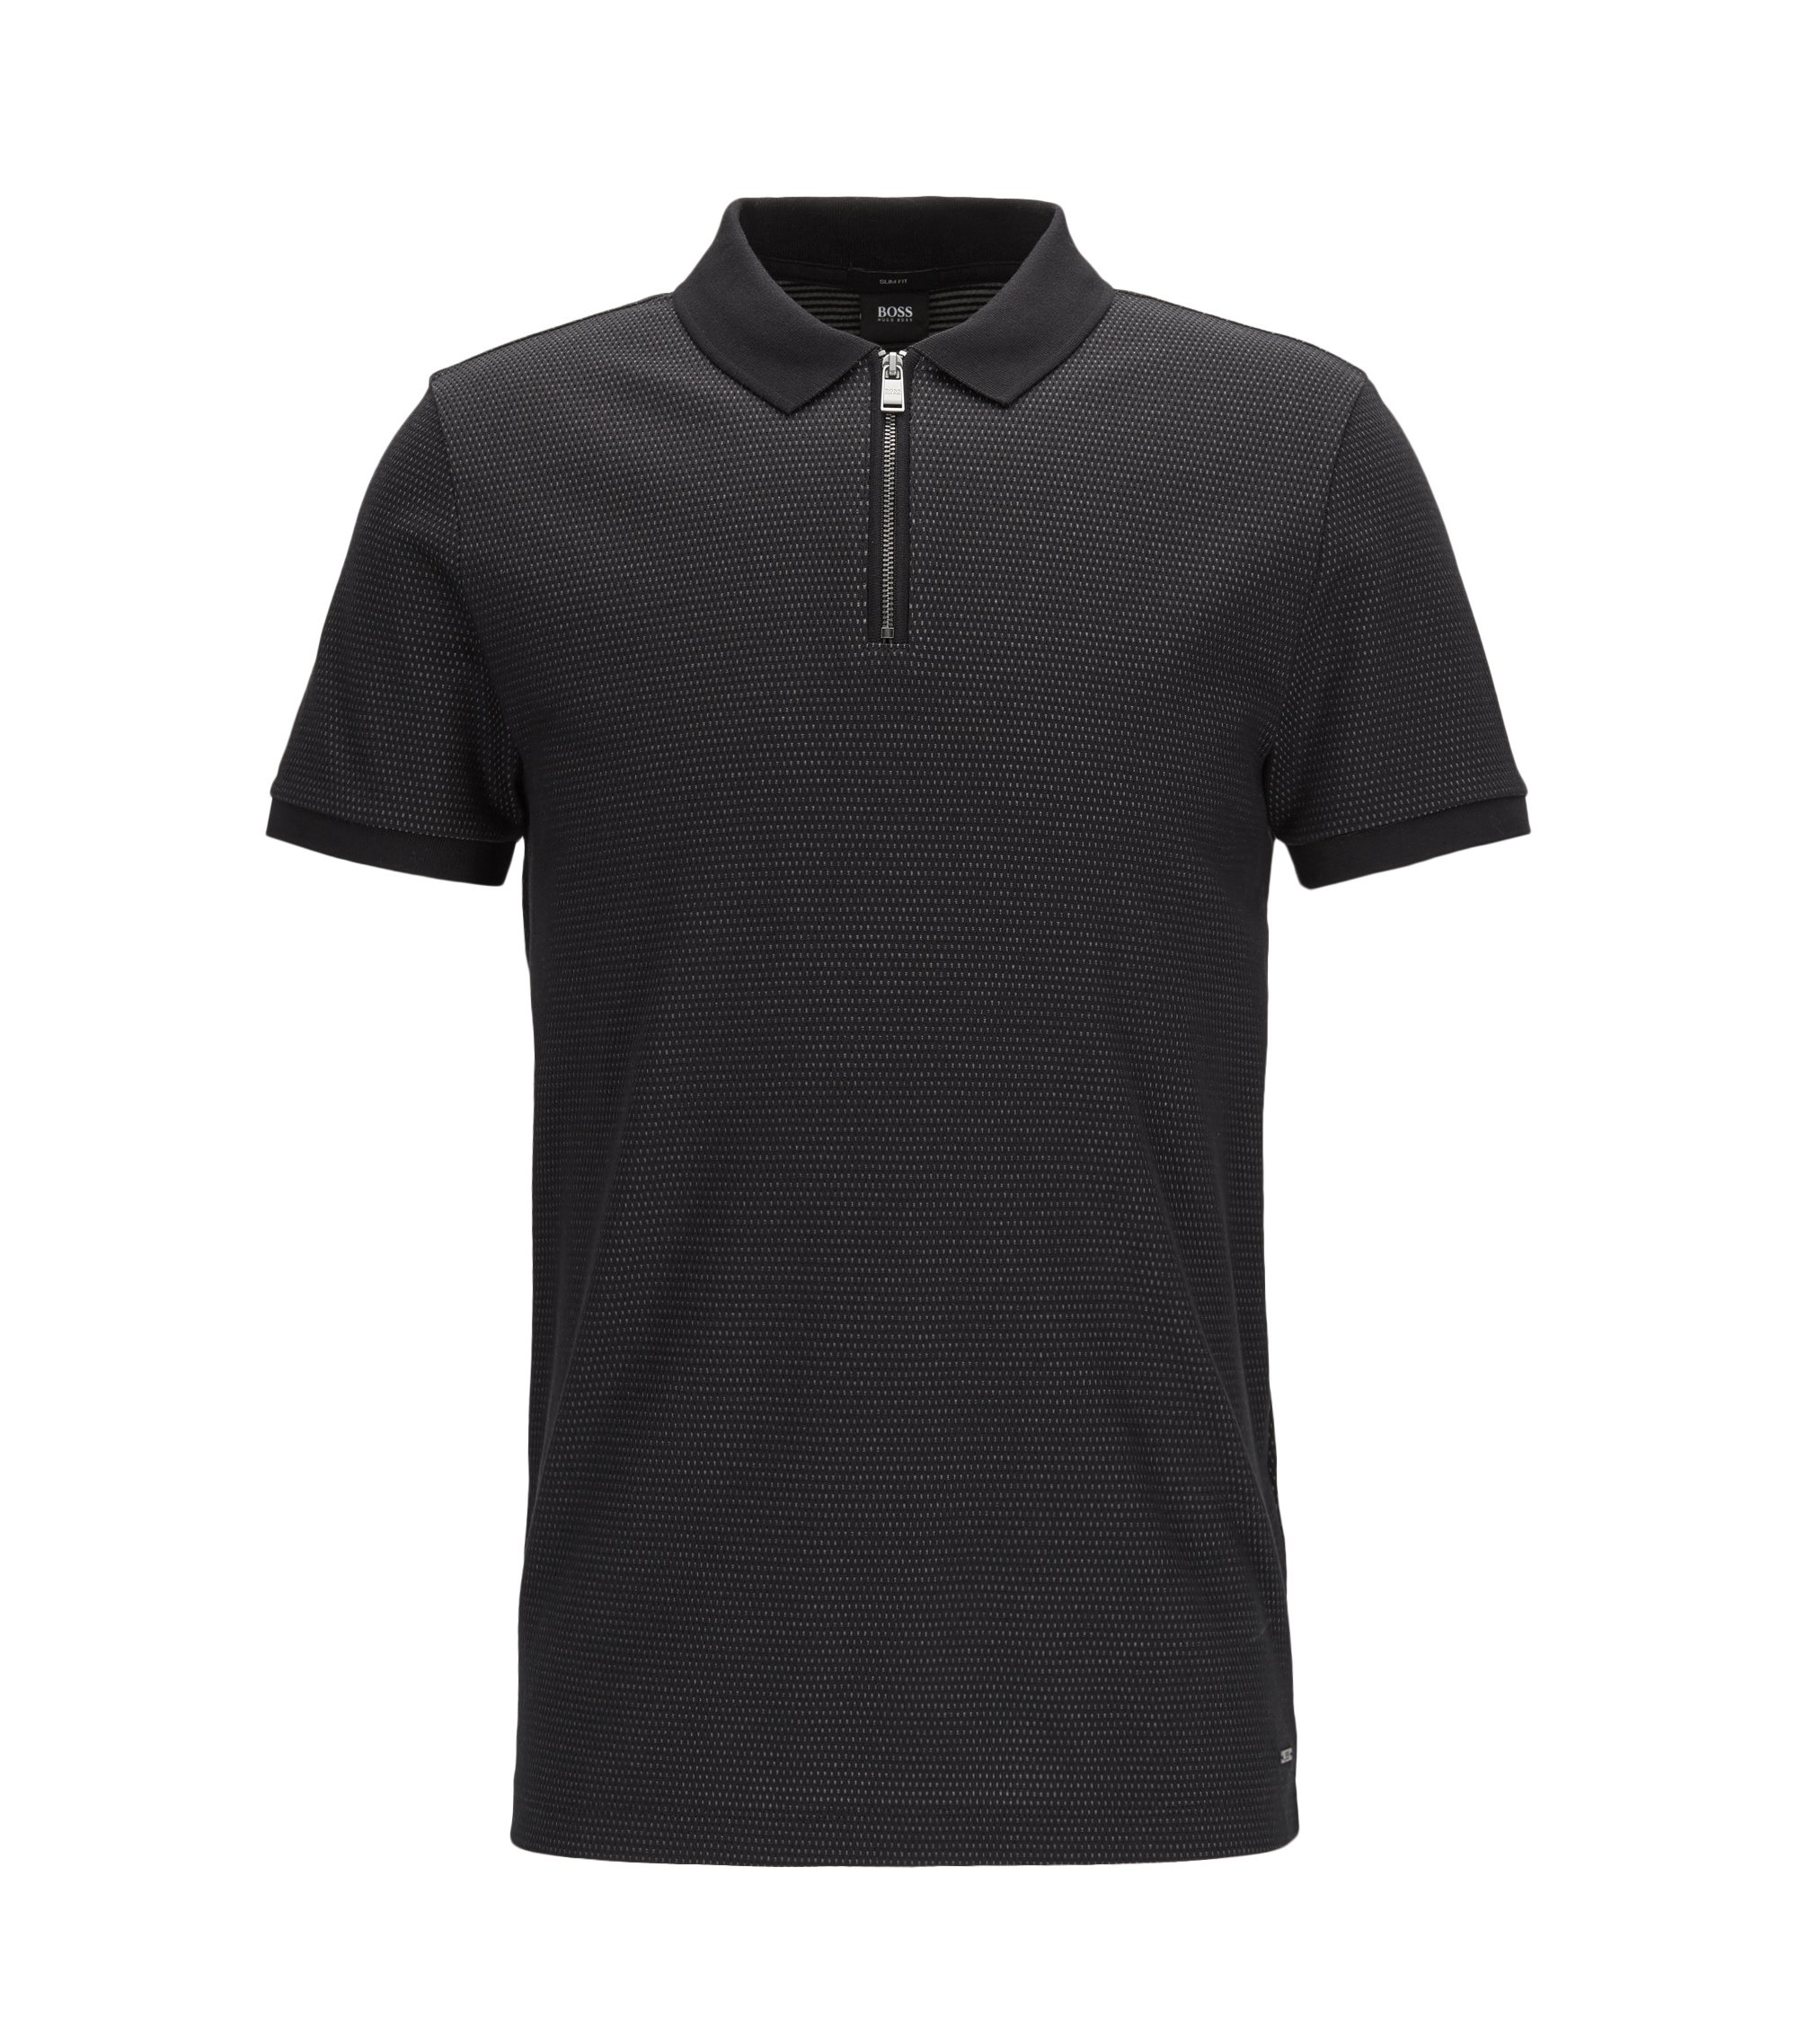 Patterned Cotton Polo Shirt, Slim Fit | Polston, Black